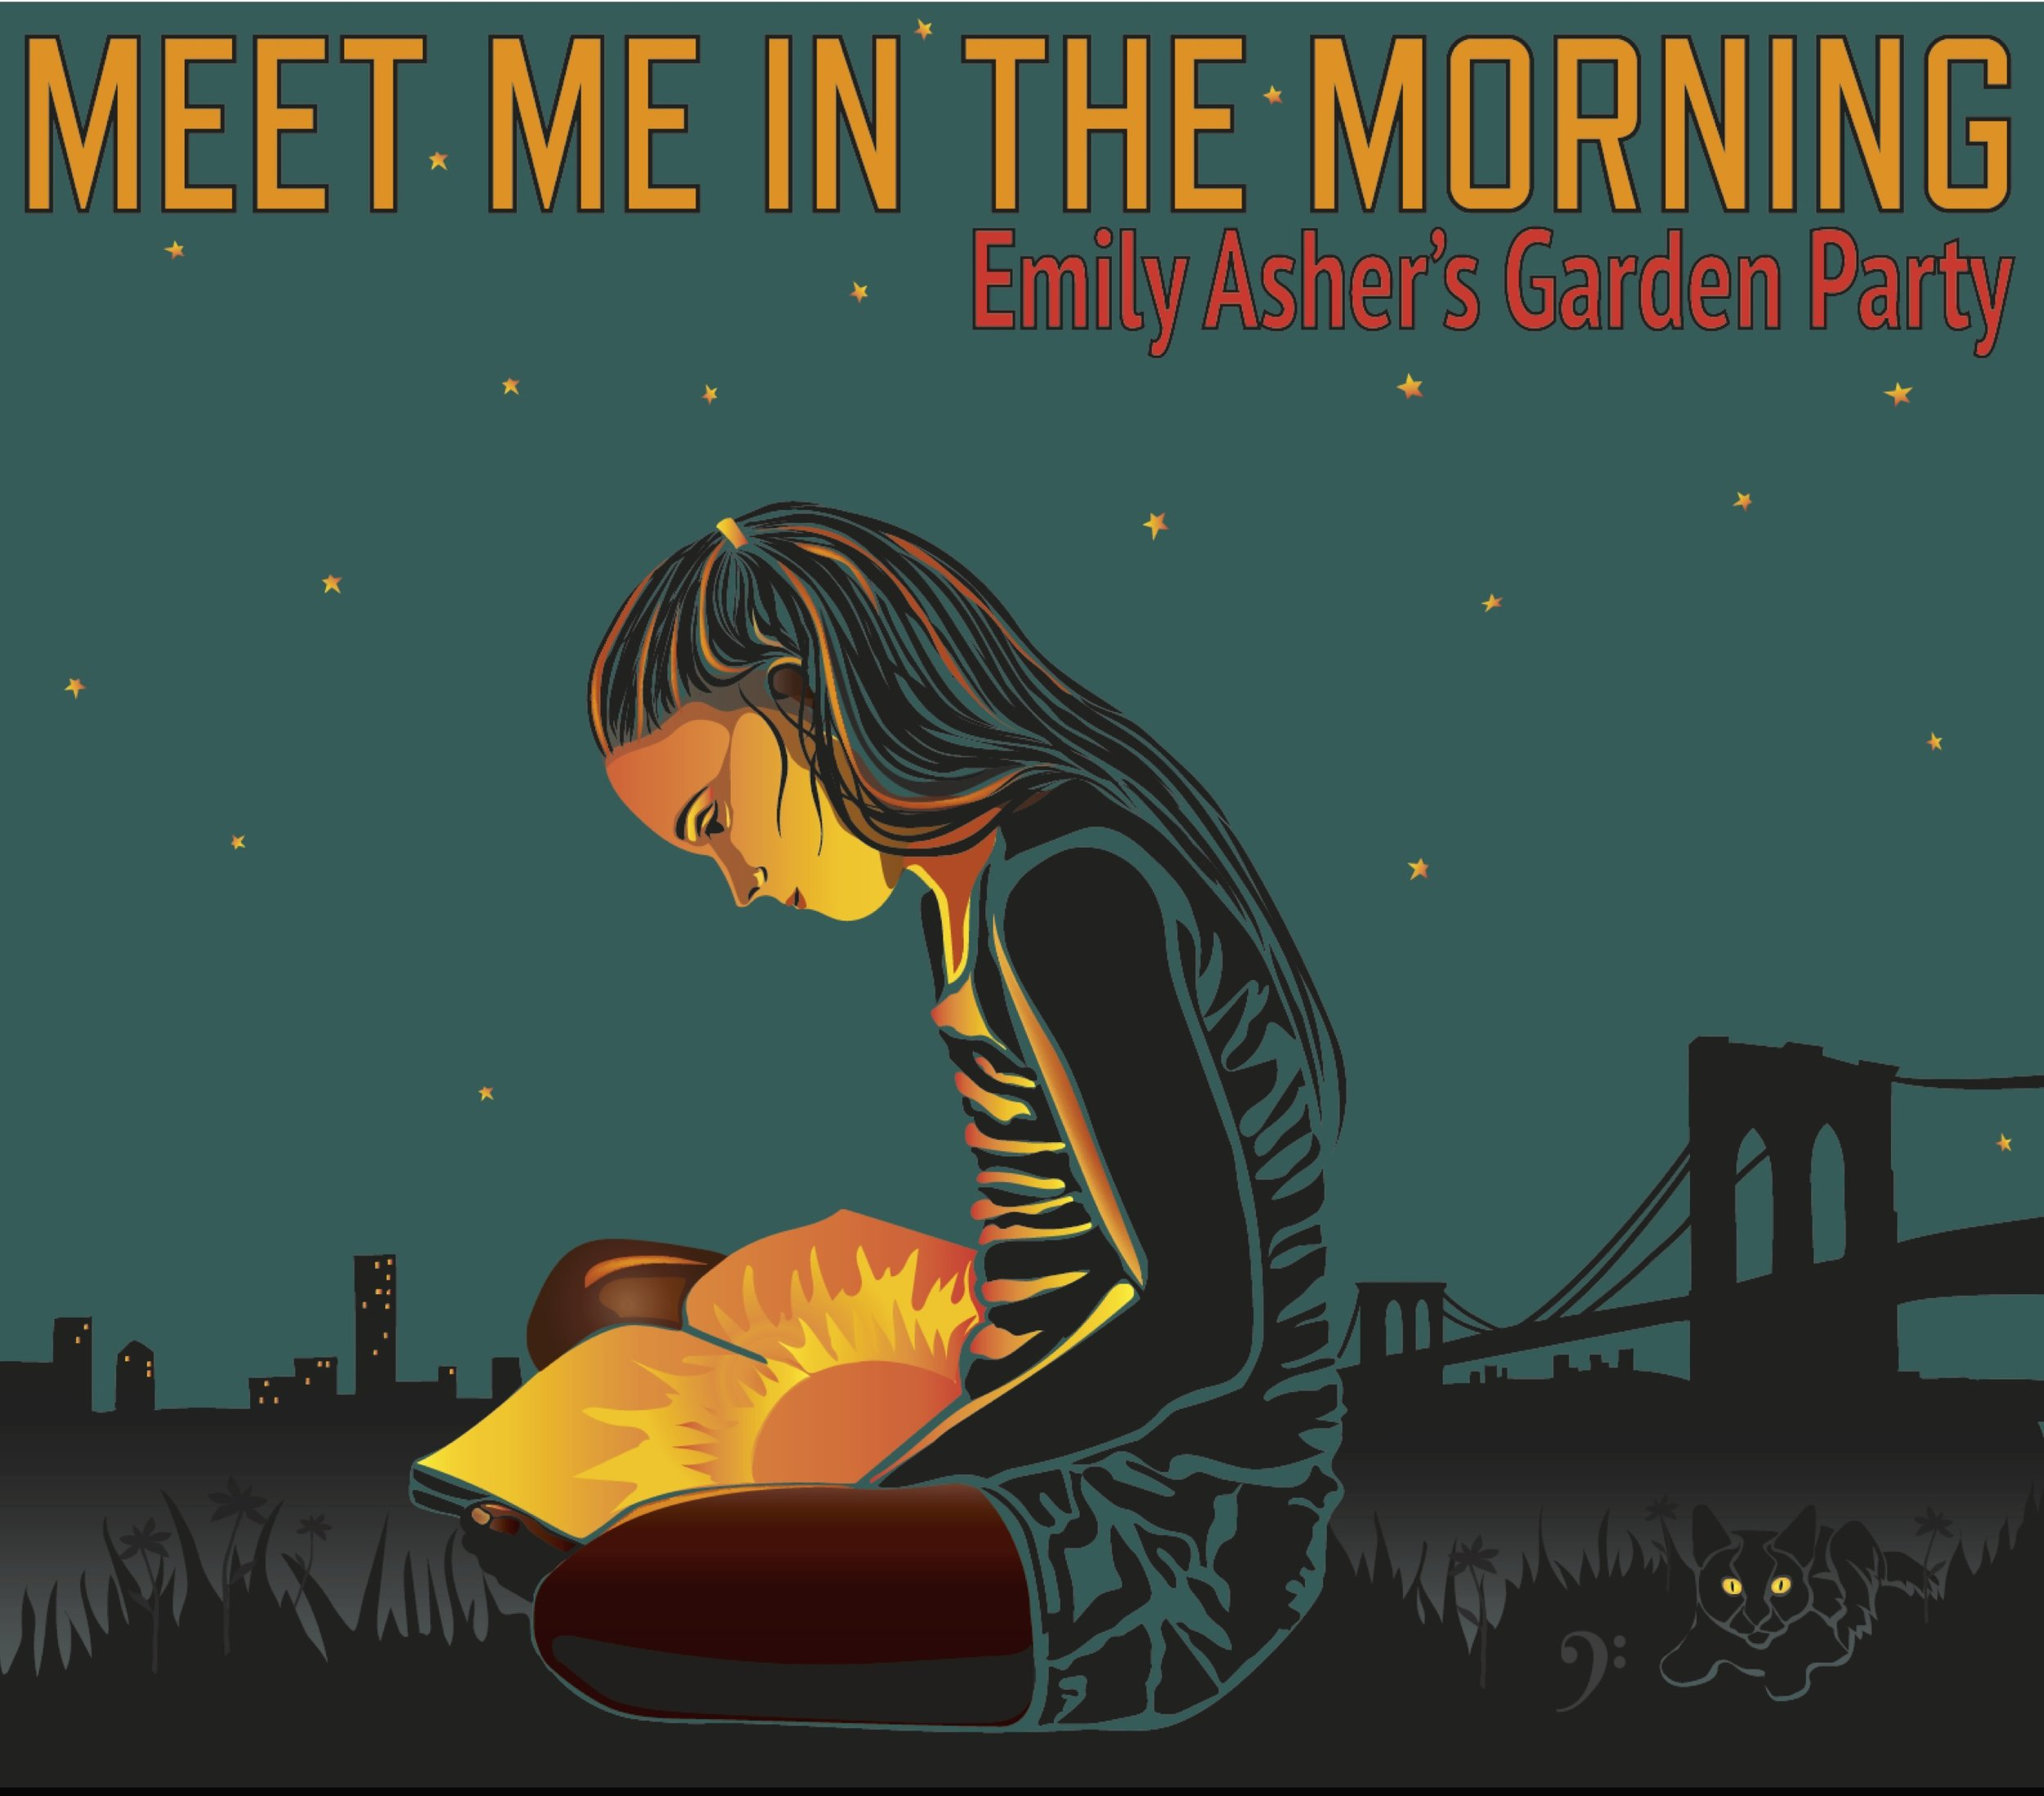 Meet Me in The Morning (2015)  Trombonist and vocalist Emily Asher knows how to throw a party and her third release, Meet Me in the Morning contains all the makings for such a shindig: boisterous, New Orleans-flavored jazz; a men's glee club vocal; energetic tambourine; good advice; danceable tempos; tinges of gospel; a touch of country; a snappy vocal duet; an effortlessly swinging rhythm section; and an air of wistfulness. It's music that's not easily categorized, but it's definitely evocative of a certain era, a time when music was made for dancing and when the listening public valued tuneful melodies, imaginative lyrics, skilled musicians and distinctive singers. This is timeless music and the members of Garden Party treat it with respect, as a living, breathing art form and not as a museum piece. -From liner notes by Ricky Riccardi   Out now on iTunes, Apple Music, Spotify, Amazon, Google Play, and more!